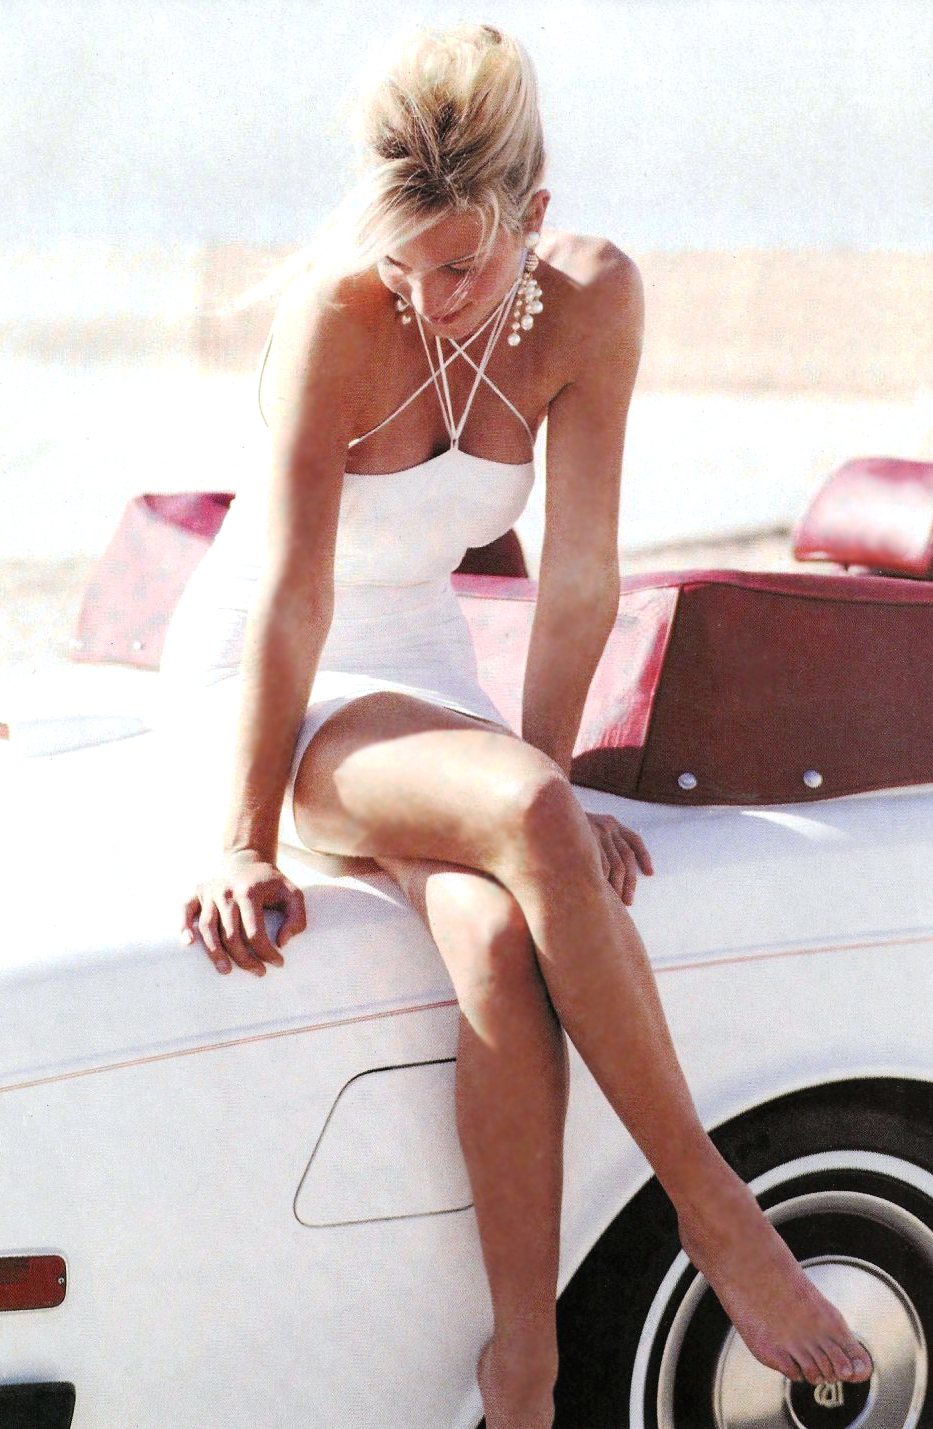 Rachel Williams in Cool whites / Vogue US February 1990 (photography: Patrick Demarchelier, styling: Carlyne Cerf de Dudzeele) via fashioned by love / british fashion blog